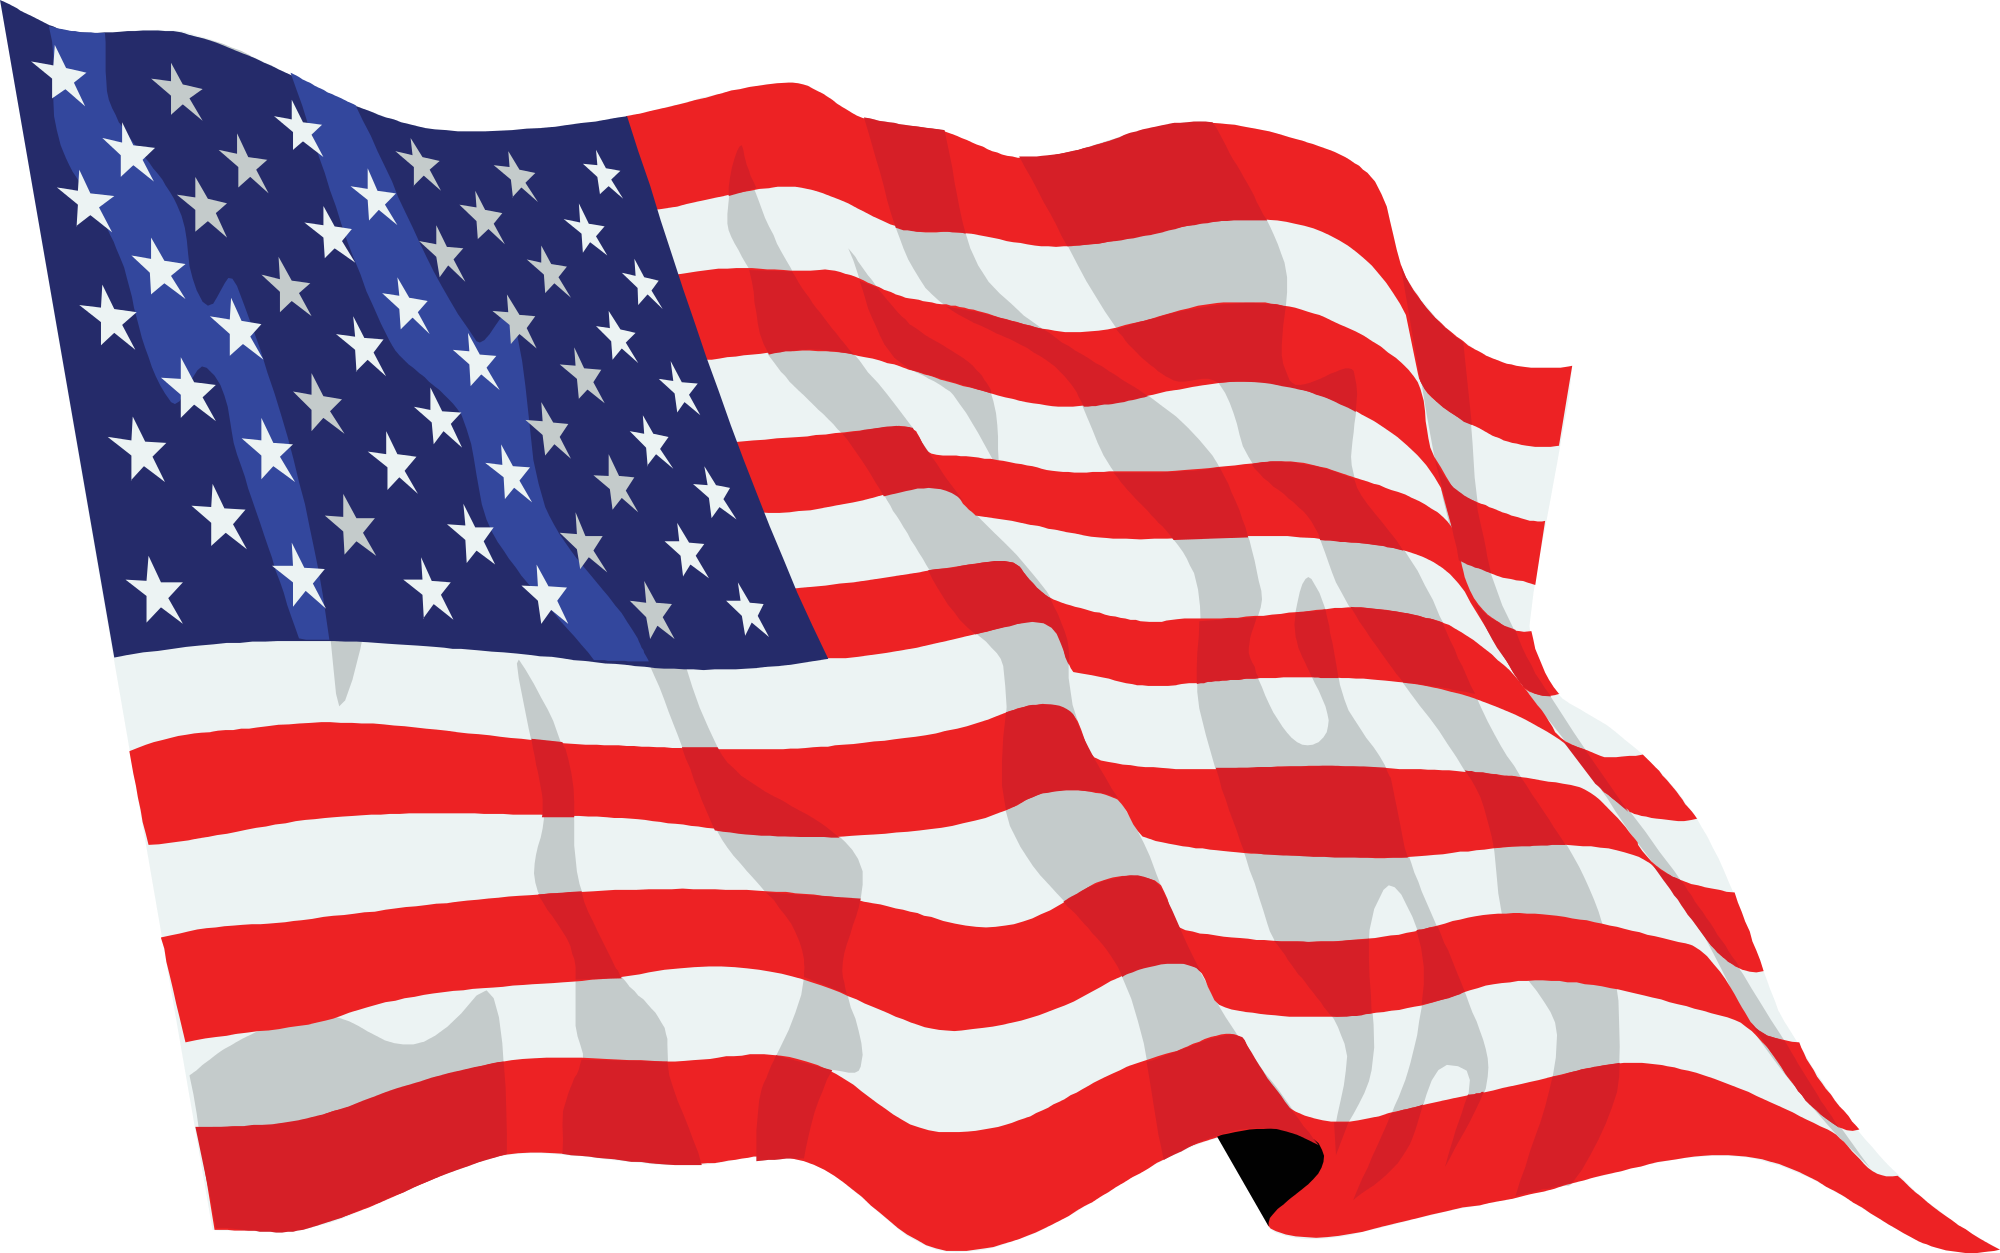 Waving us flag clipart png black and white File:United States flag waving icon.svg - Wikimedia Commons png black and white